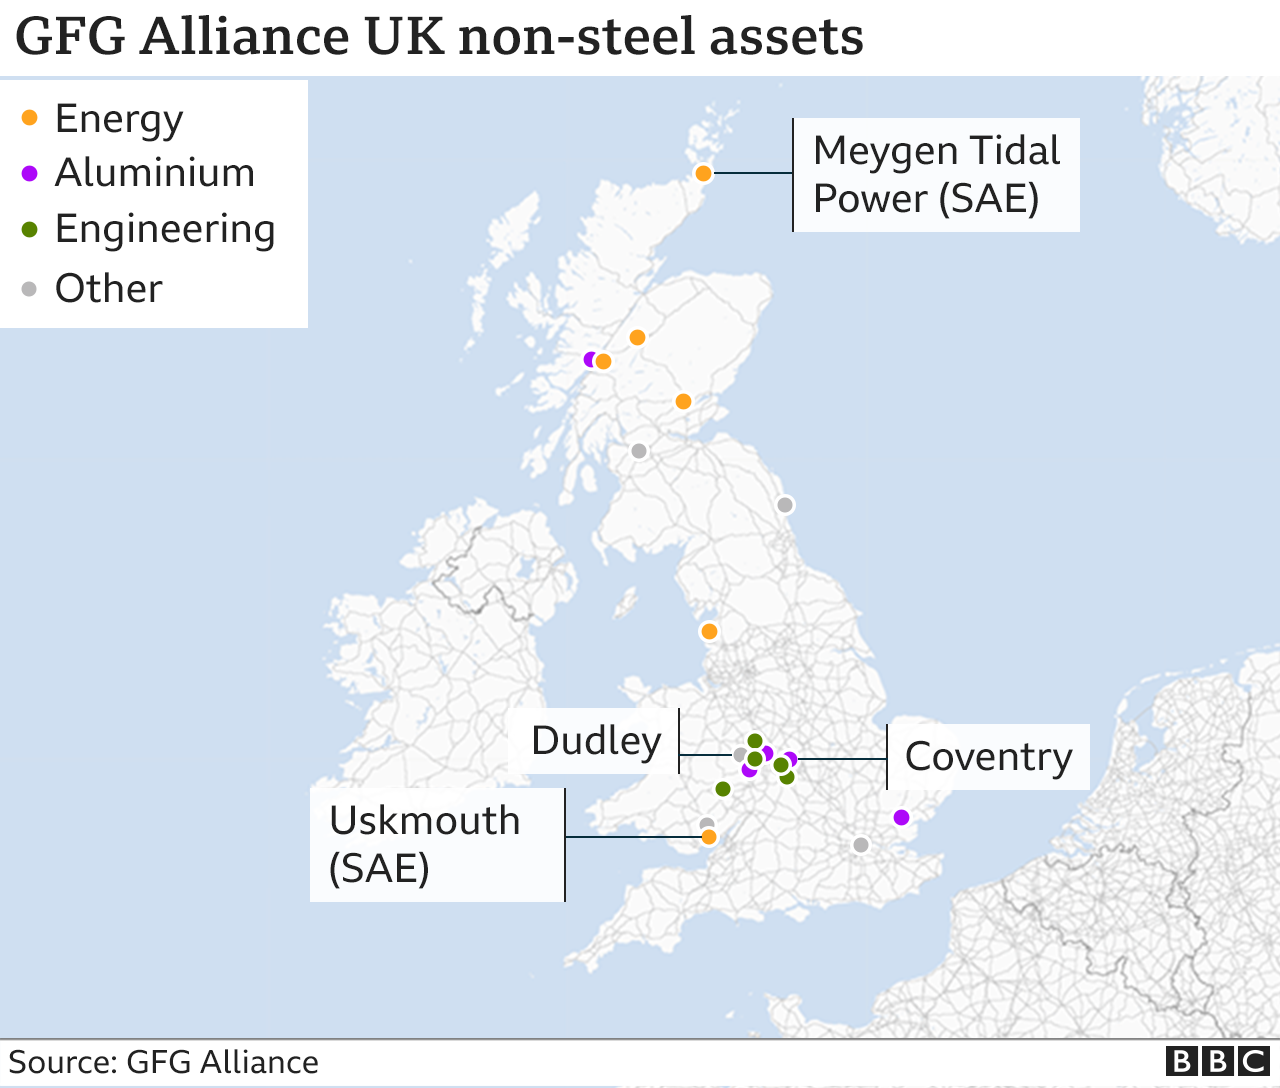 Map of UK showing position of Alliance facilities excluding steel